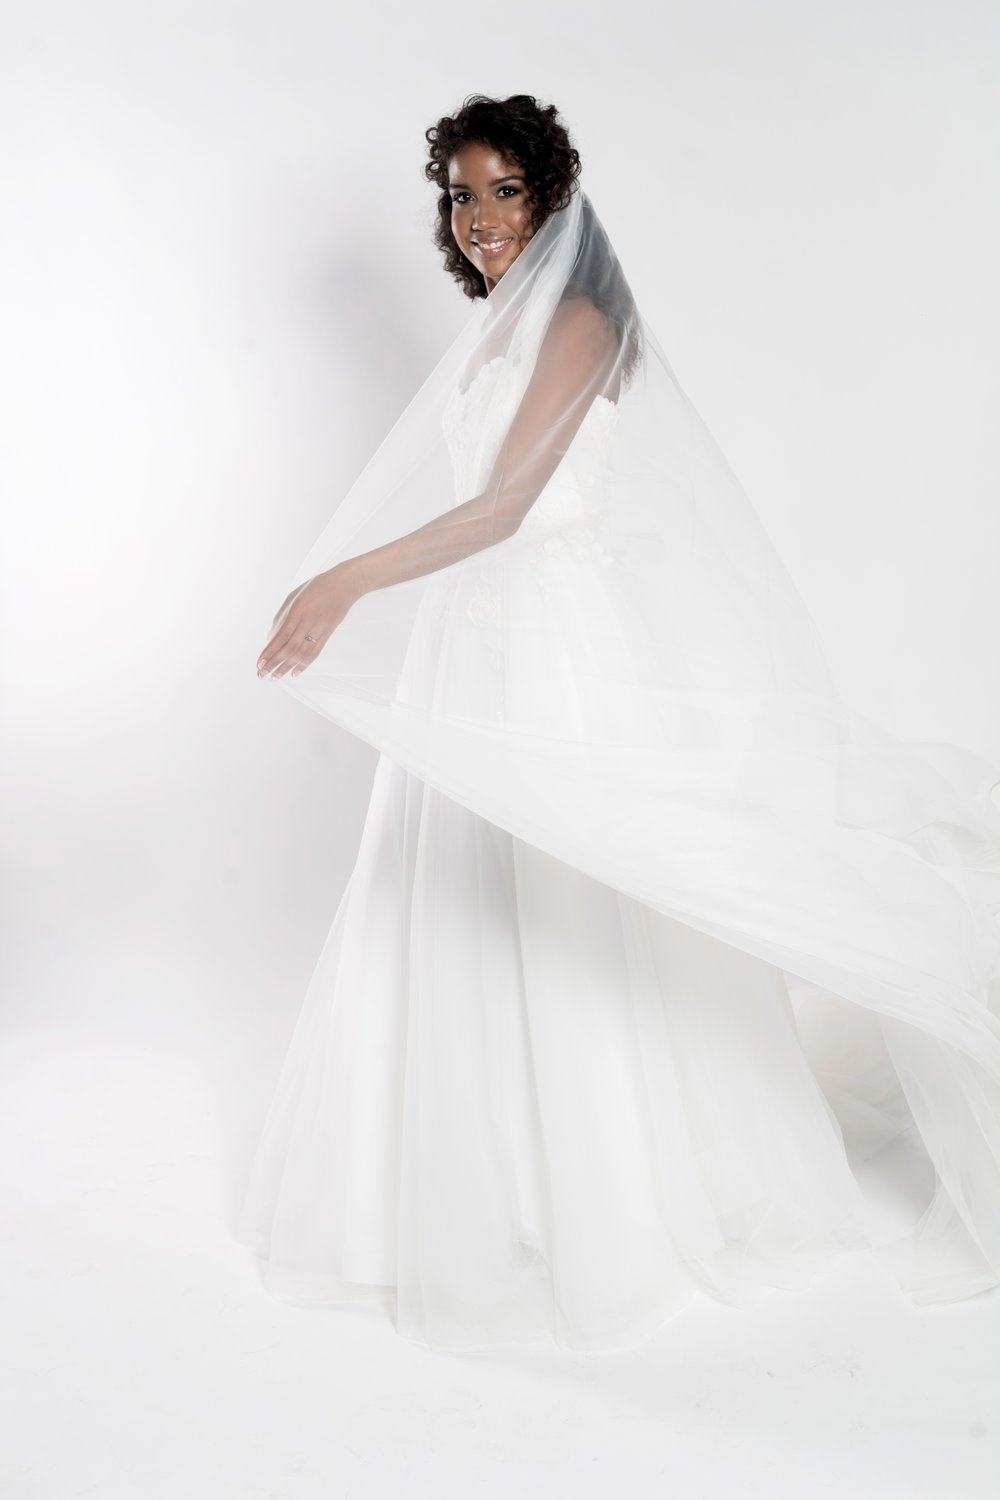 Tulle and lace ballgown wedding dress with veil